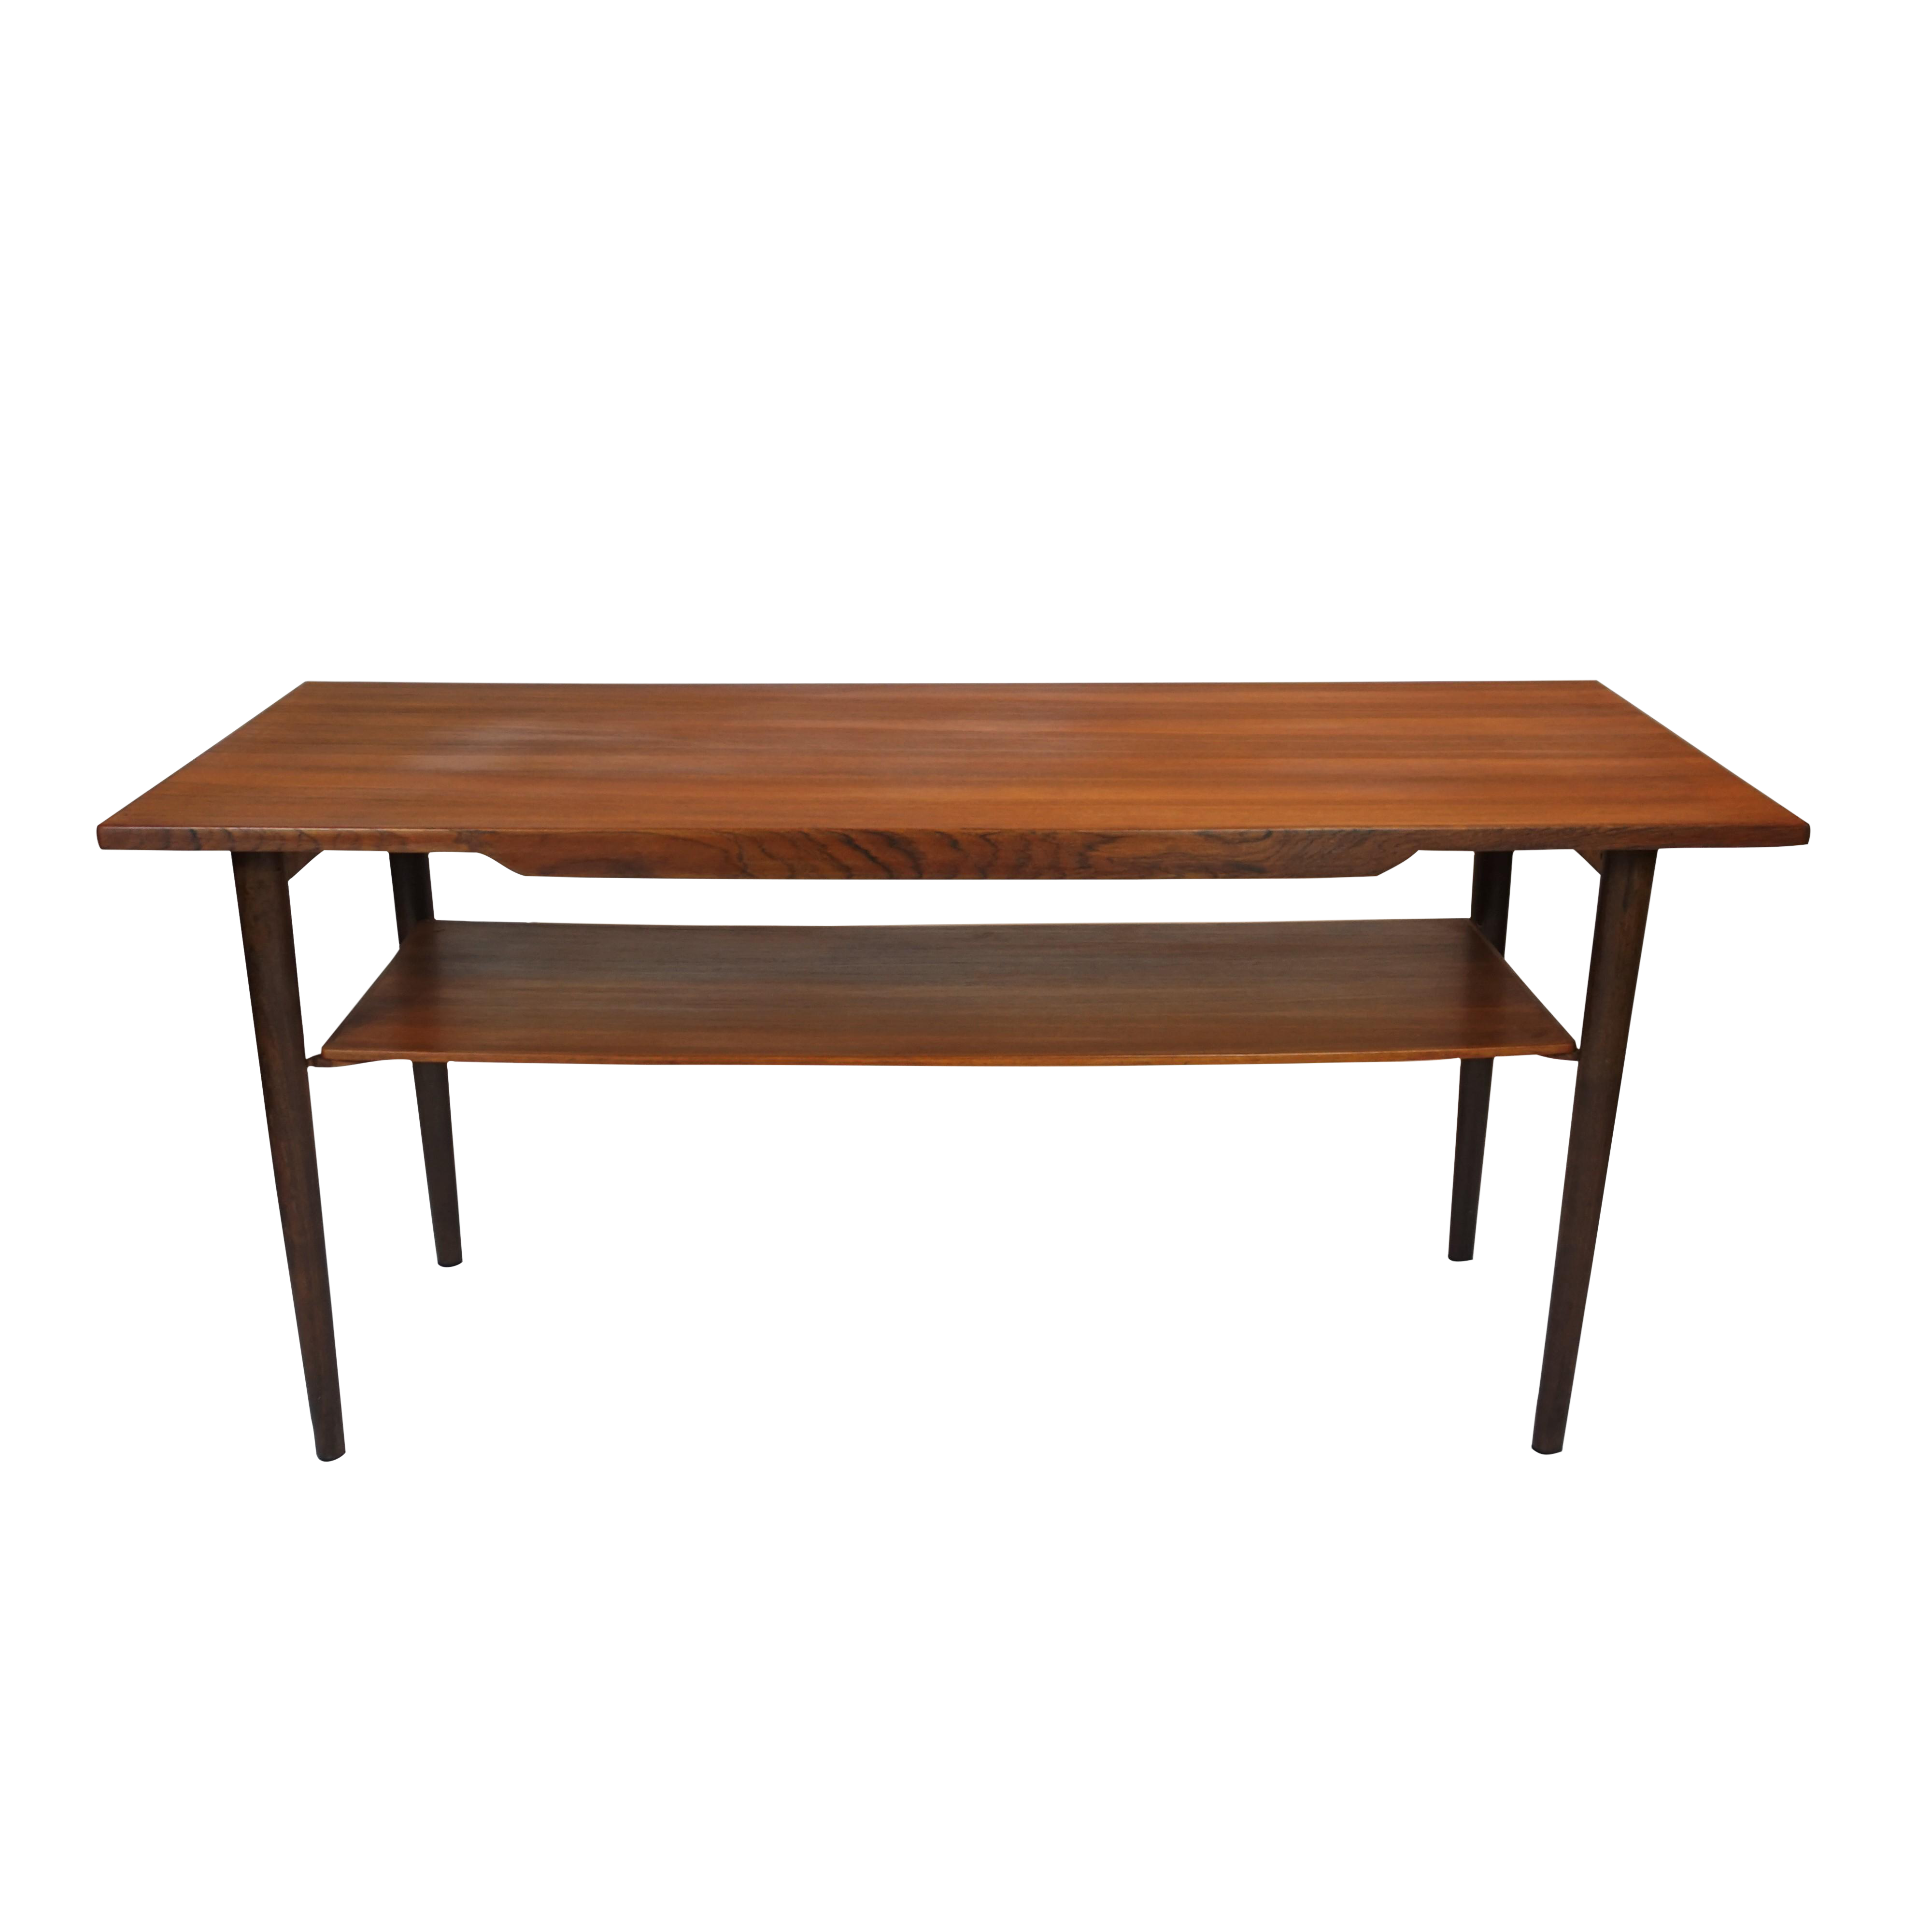 Danish Teak Coffee Table With Lower Shelf